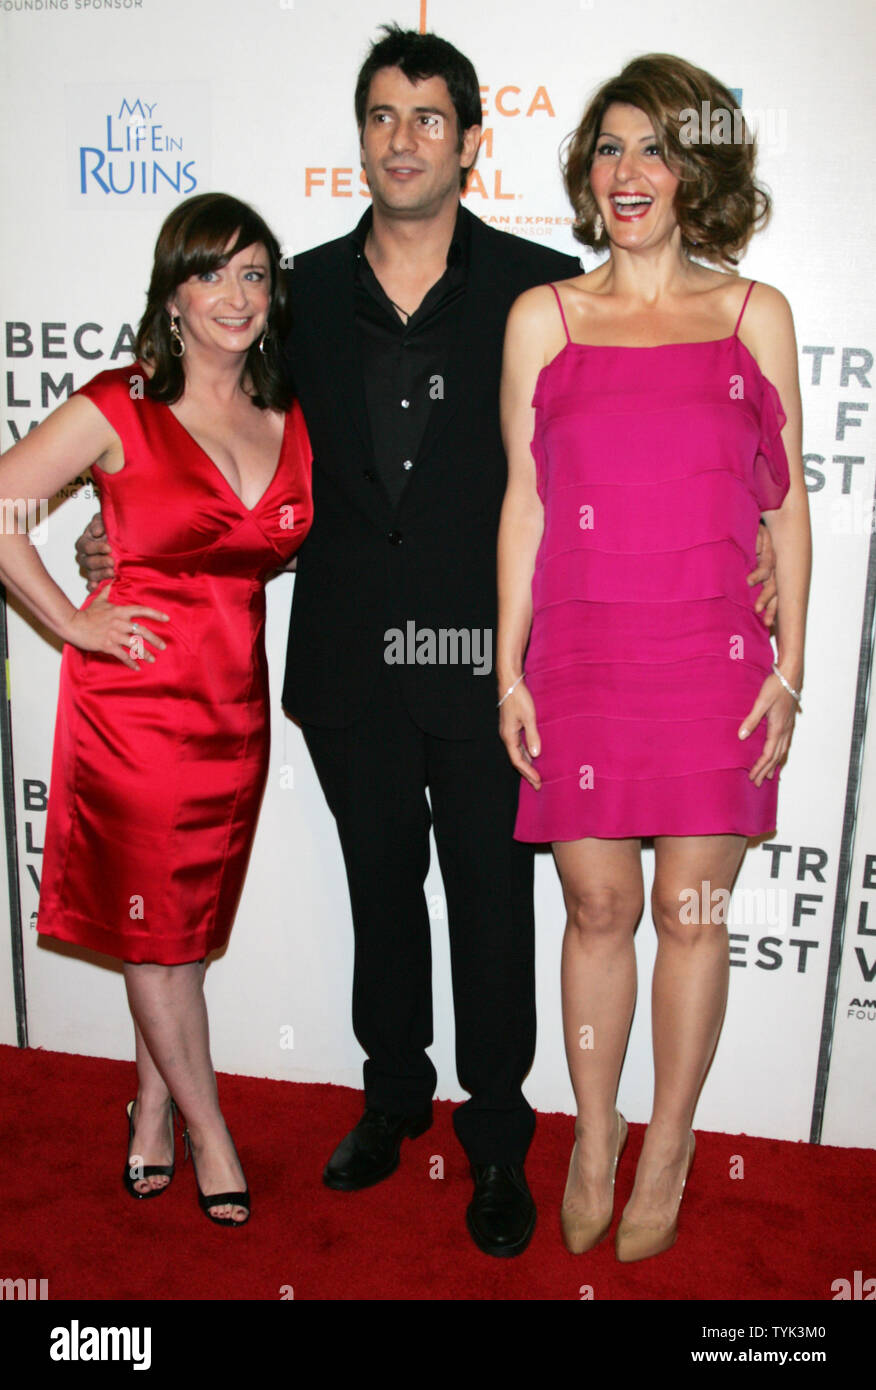 L R Rachel Dratch Alexis Georgoulis And Nia Vardalos Arrive For The Tribeca Film Festival Premiere Of My Life In Ruins At The Tribeca Performing Arts Center Bmcc In New York On May 2 Get all the details on alexis georgoulis, watch interviews and videos, and see what else bing knows. https www alamy com l r rachel dratch alexis georgoulis and nia vardalos arrive for the tribeca film festival premiere of my life in ruins at the tribeca performing arts centerbmcc in new york on may 2 2009 upi photolaura cavanaugh image257960864 html